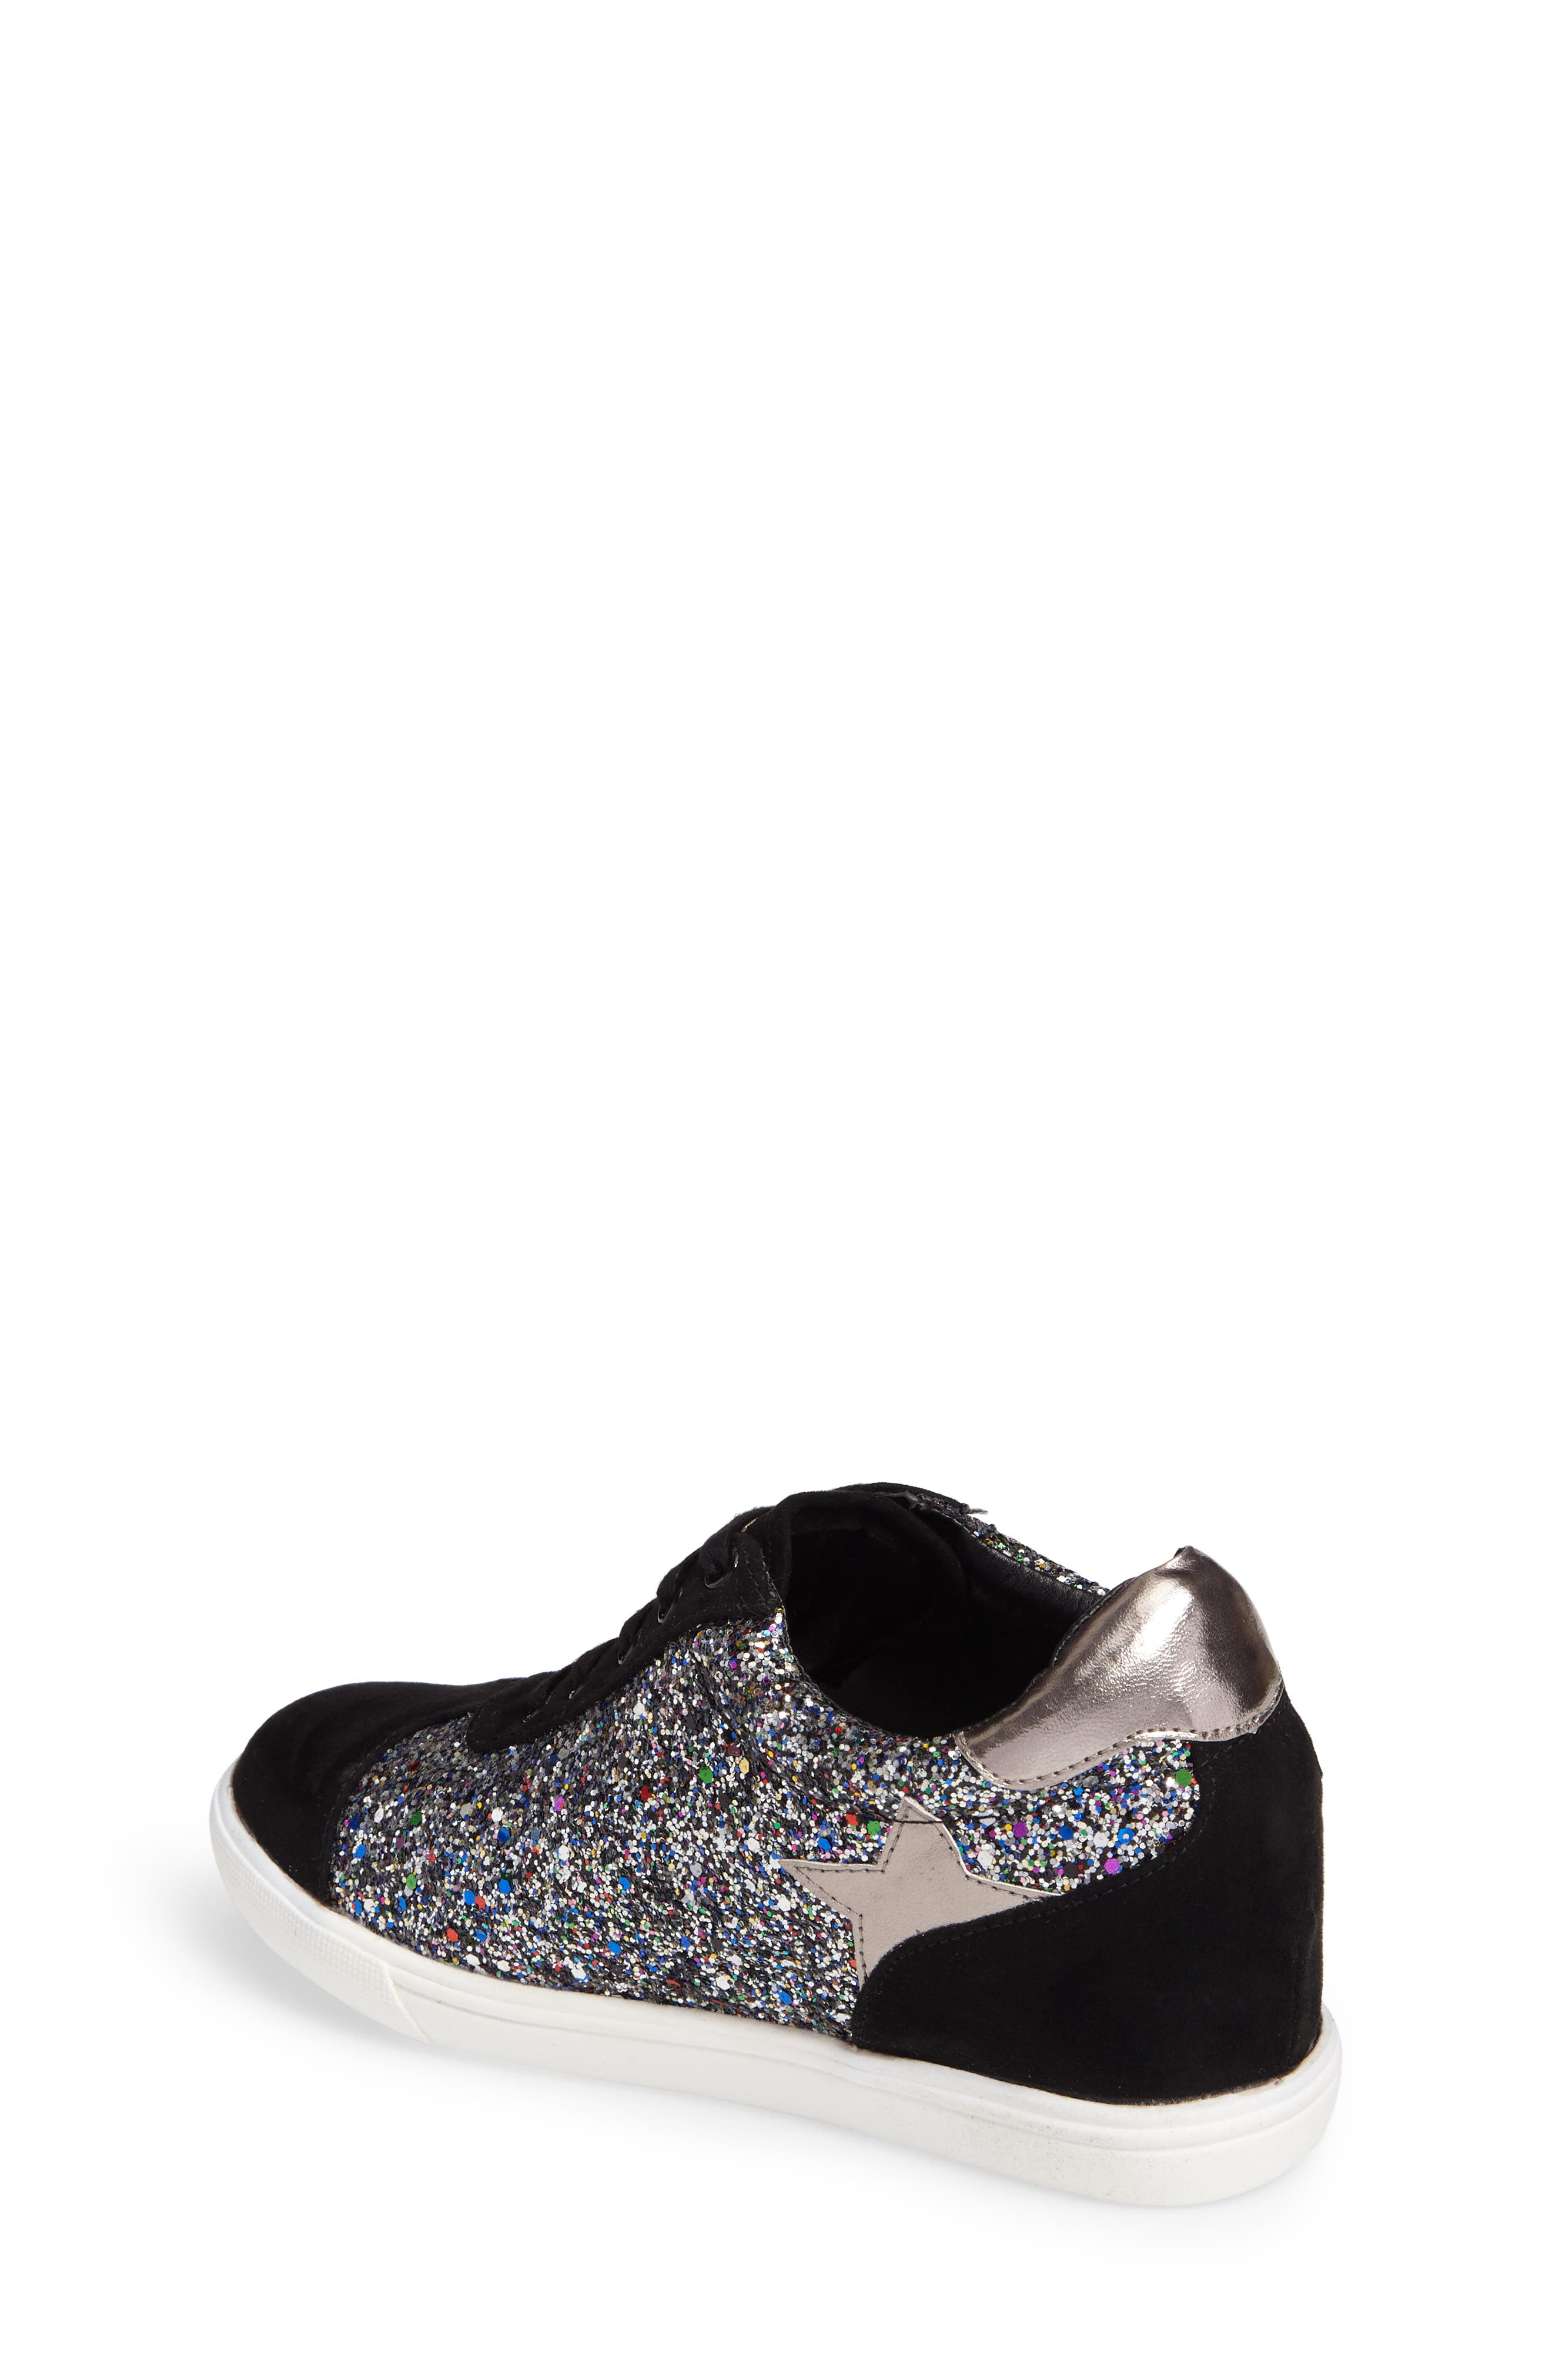 Alternate Image 3  - Ash Low Star Glittery Concealed Wedge Sneaker (Toddler, Little Kid & Big Kid)